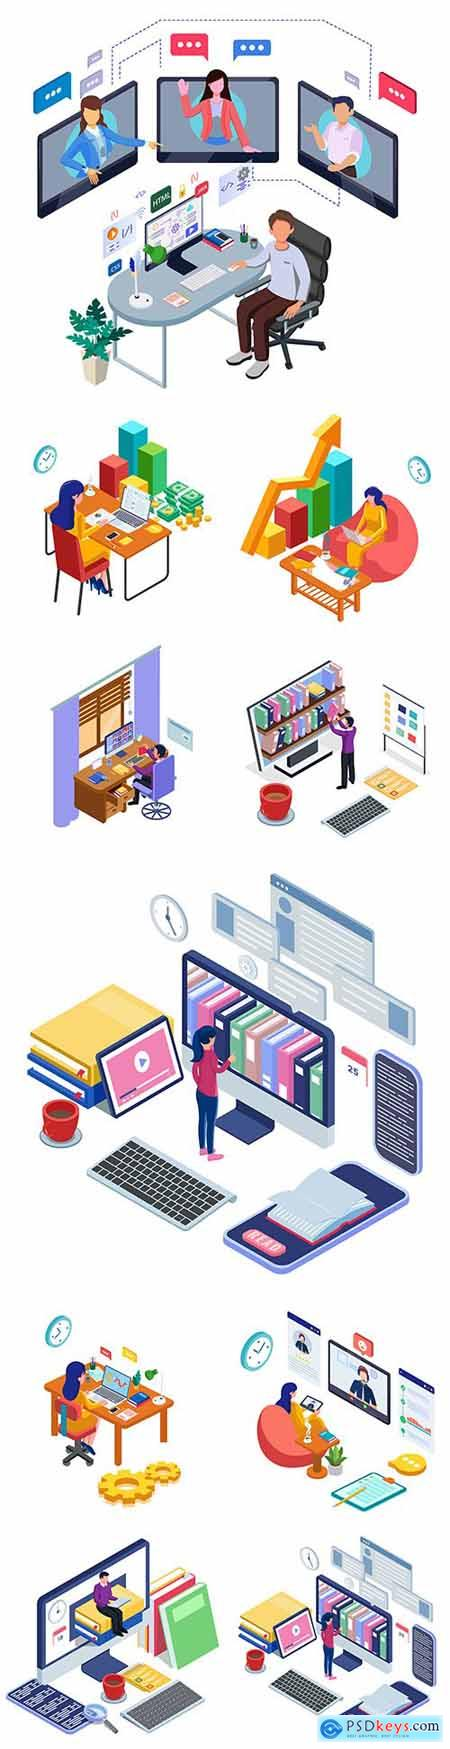 People work online and from home isometric illustrations